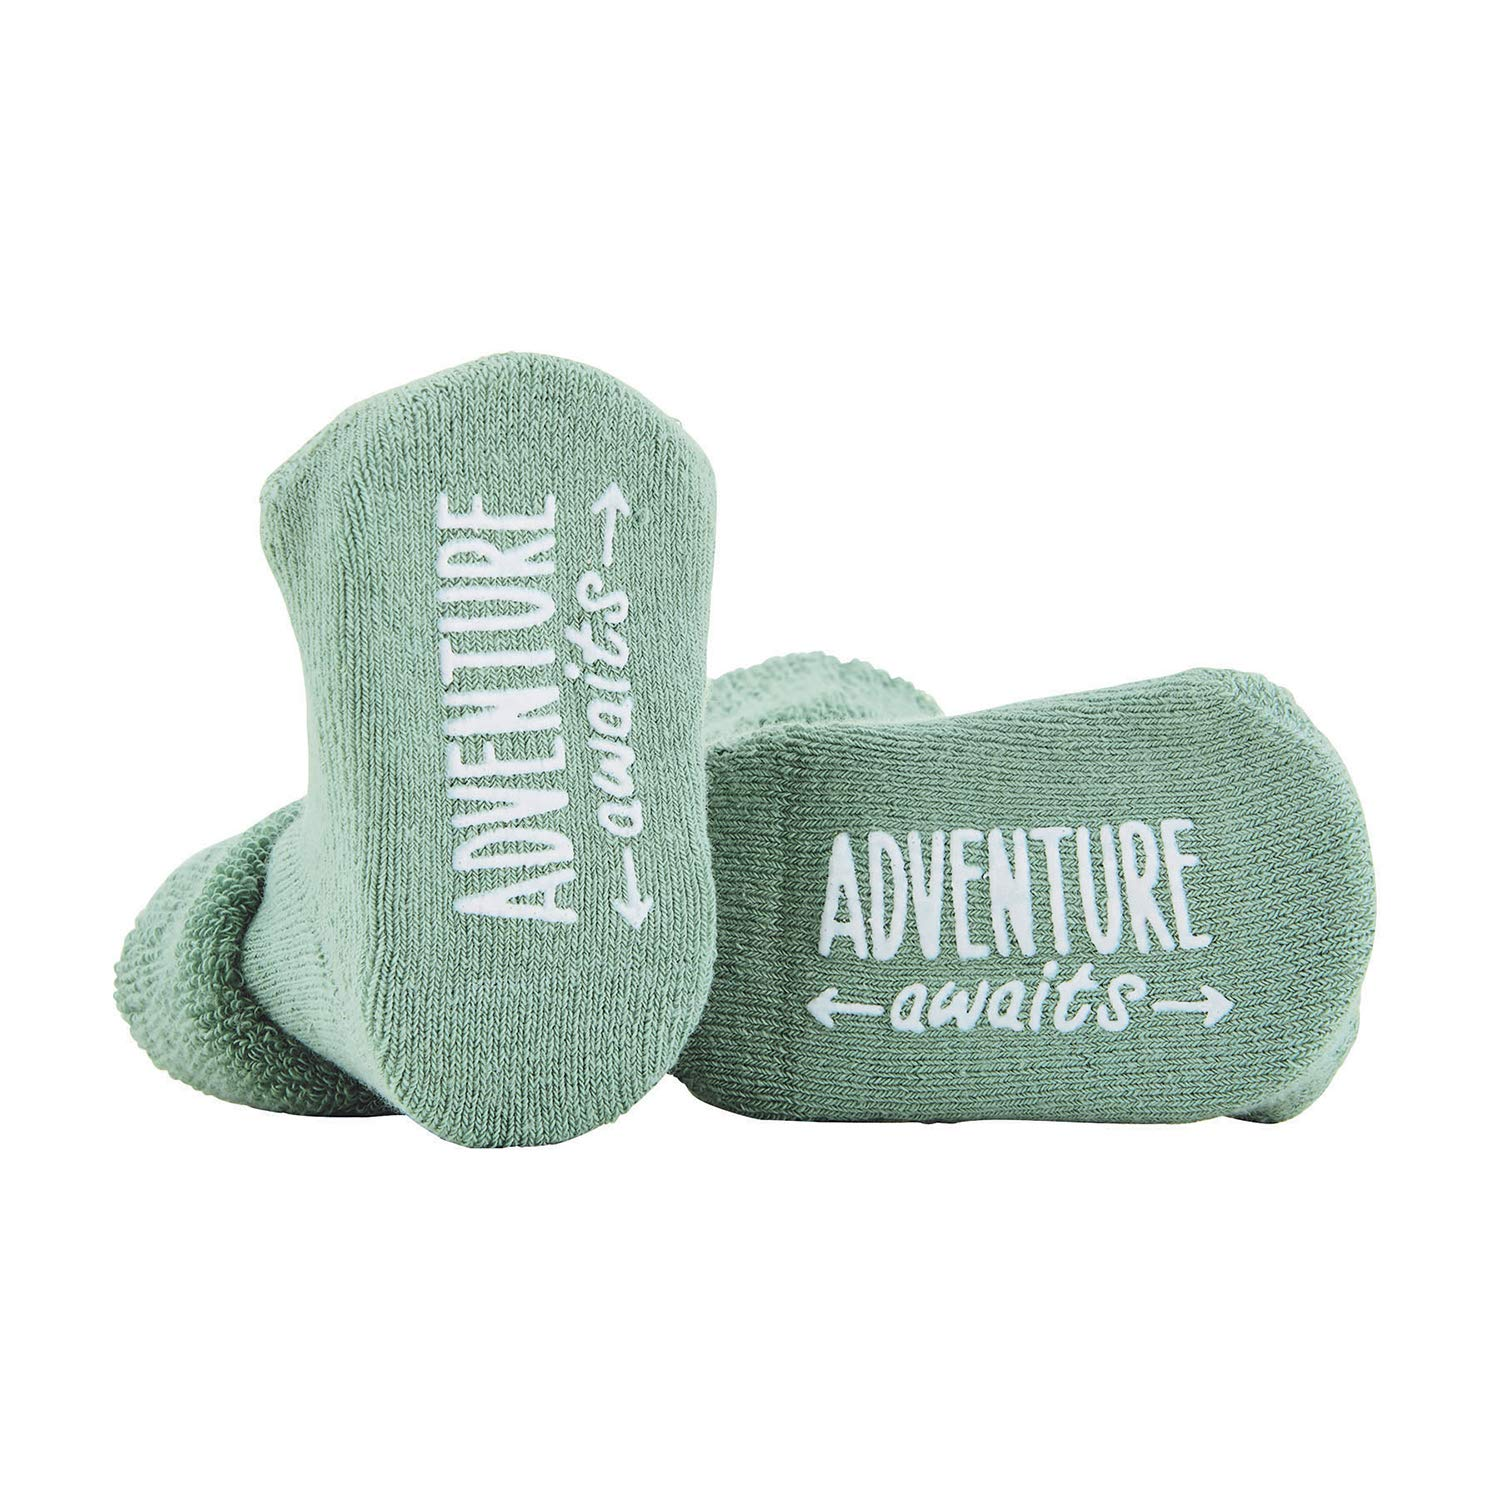 Stephan Baby Non-Skid Silly Socks with Cute Sayings, Adventure Awaits, Fits 3-12 Months